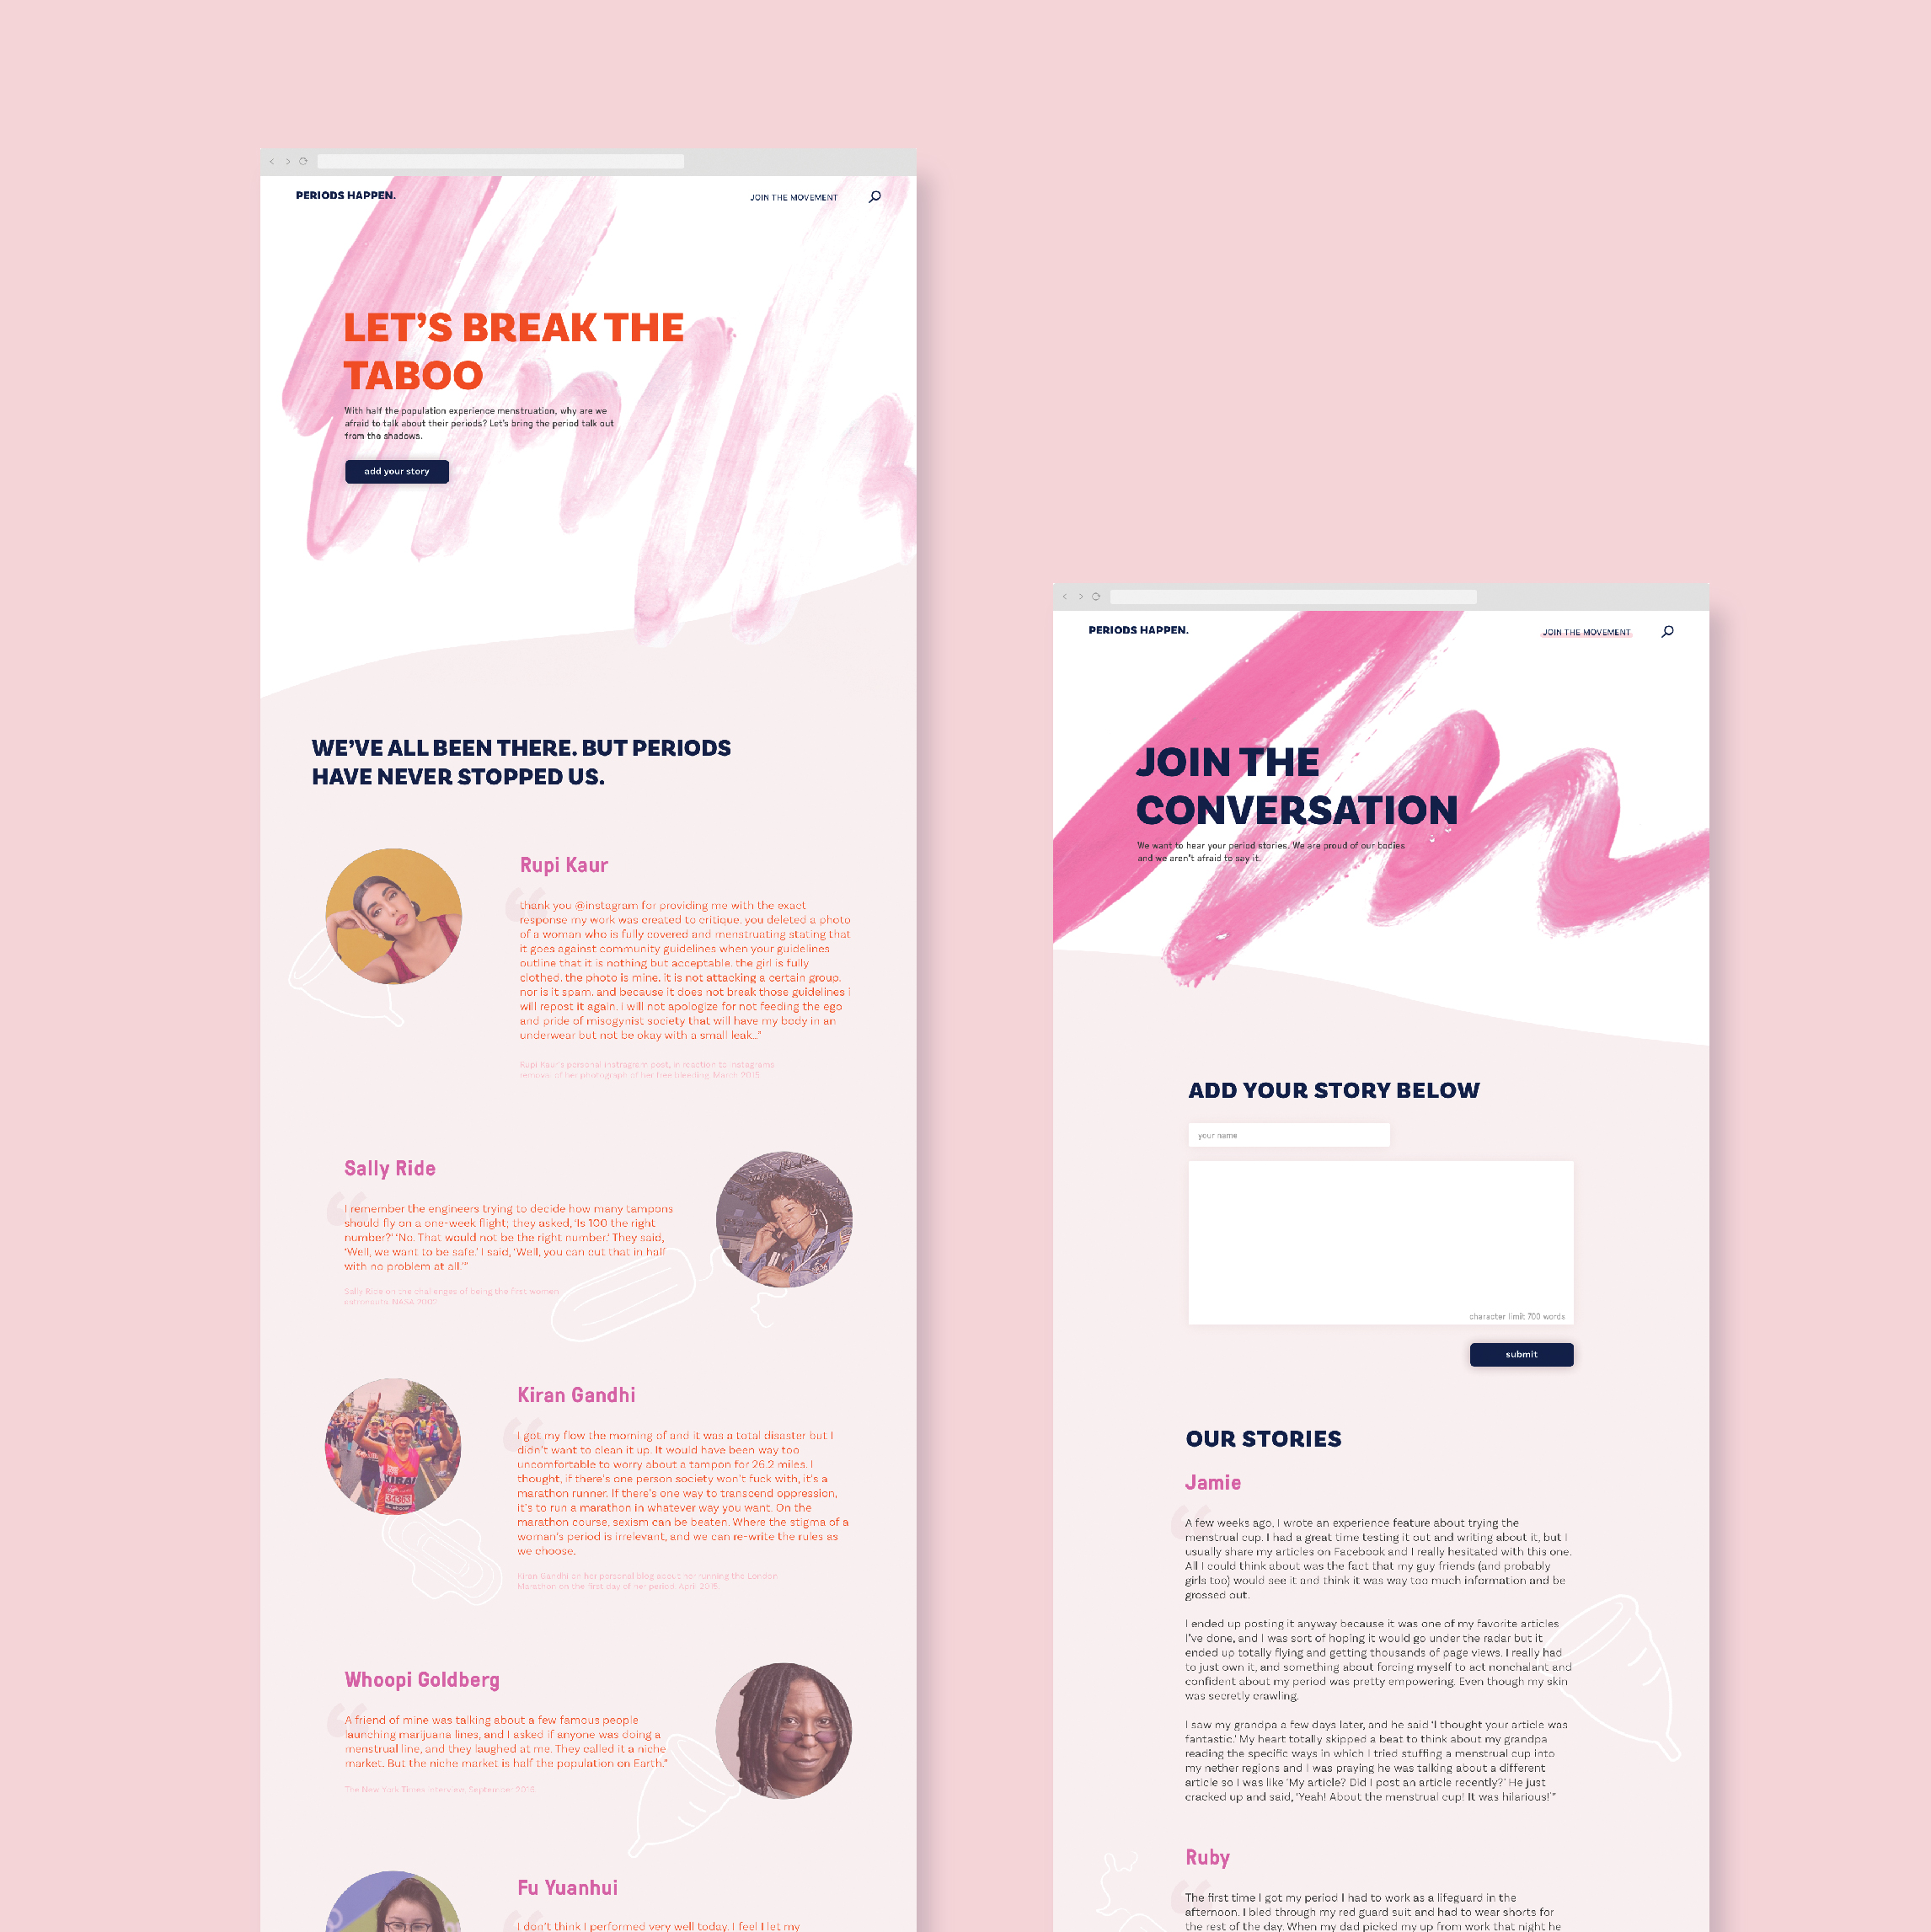 Extended Homepage and Join the Conversation Page Design